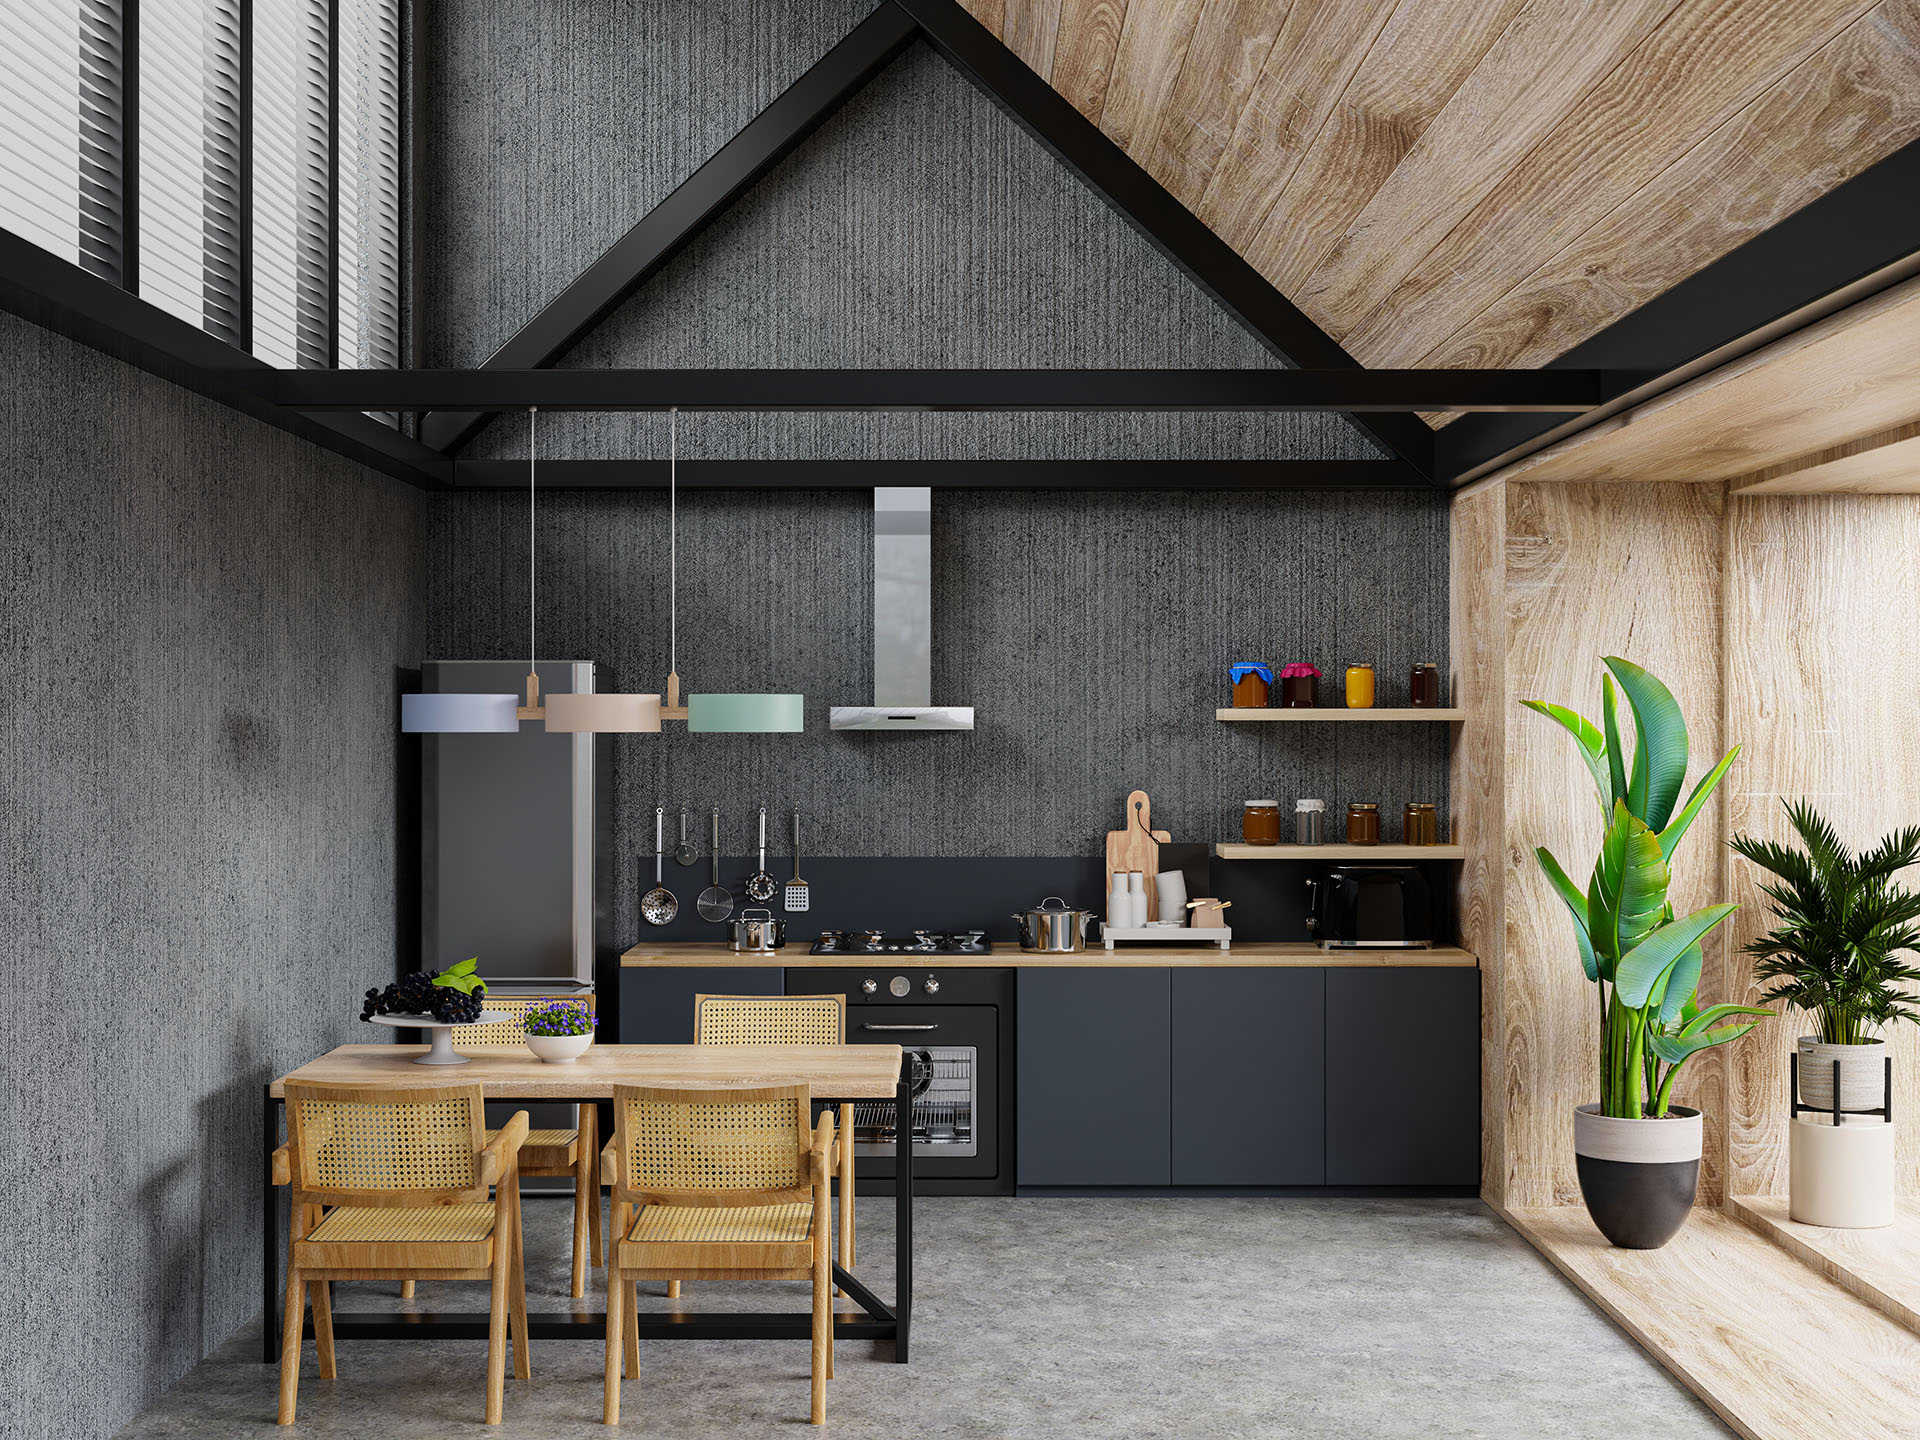 Interior of spacious kitchen with concrete wall.3d rendering